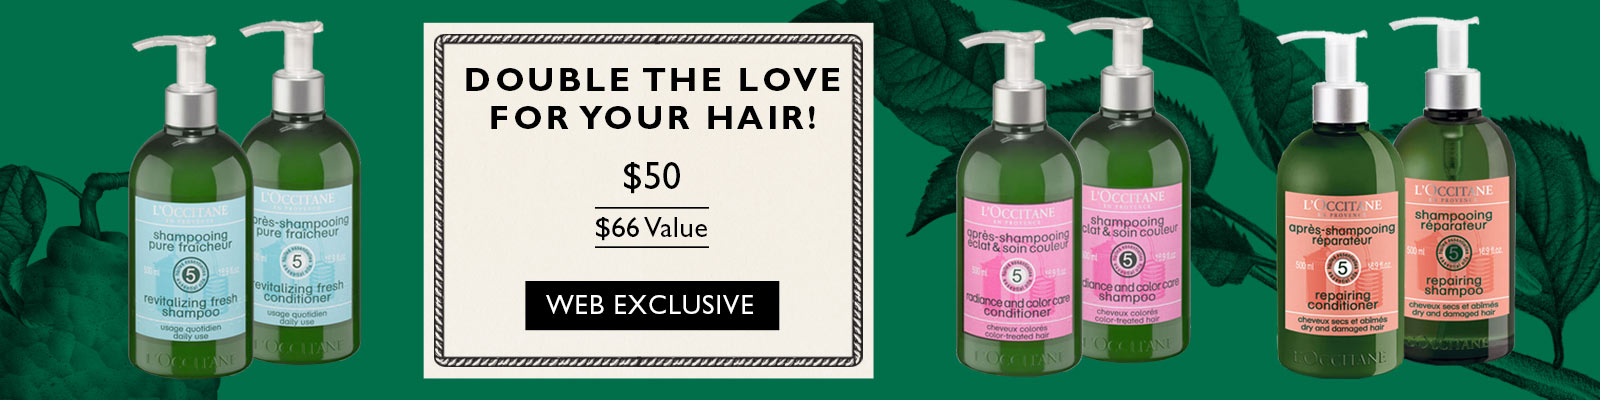 Double the Love for your hair - Web Exclusive